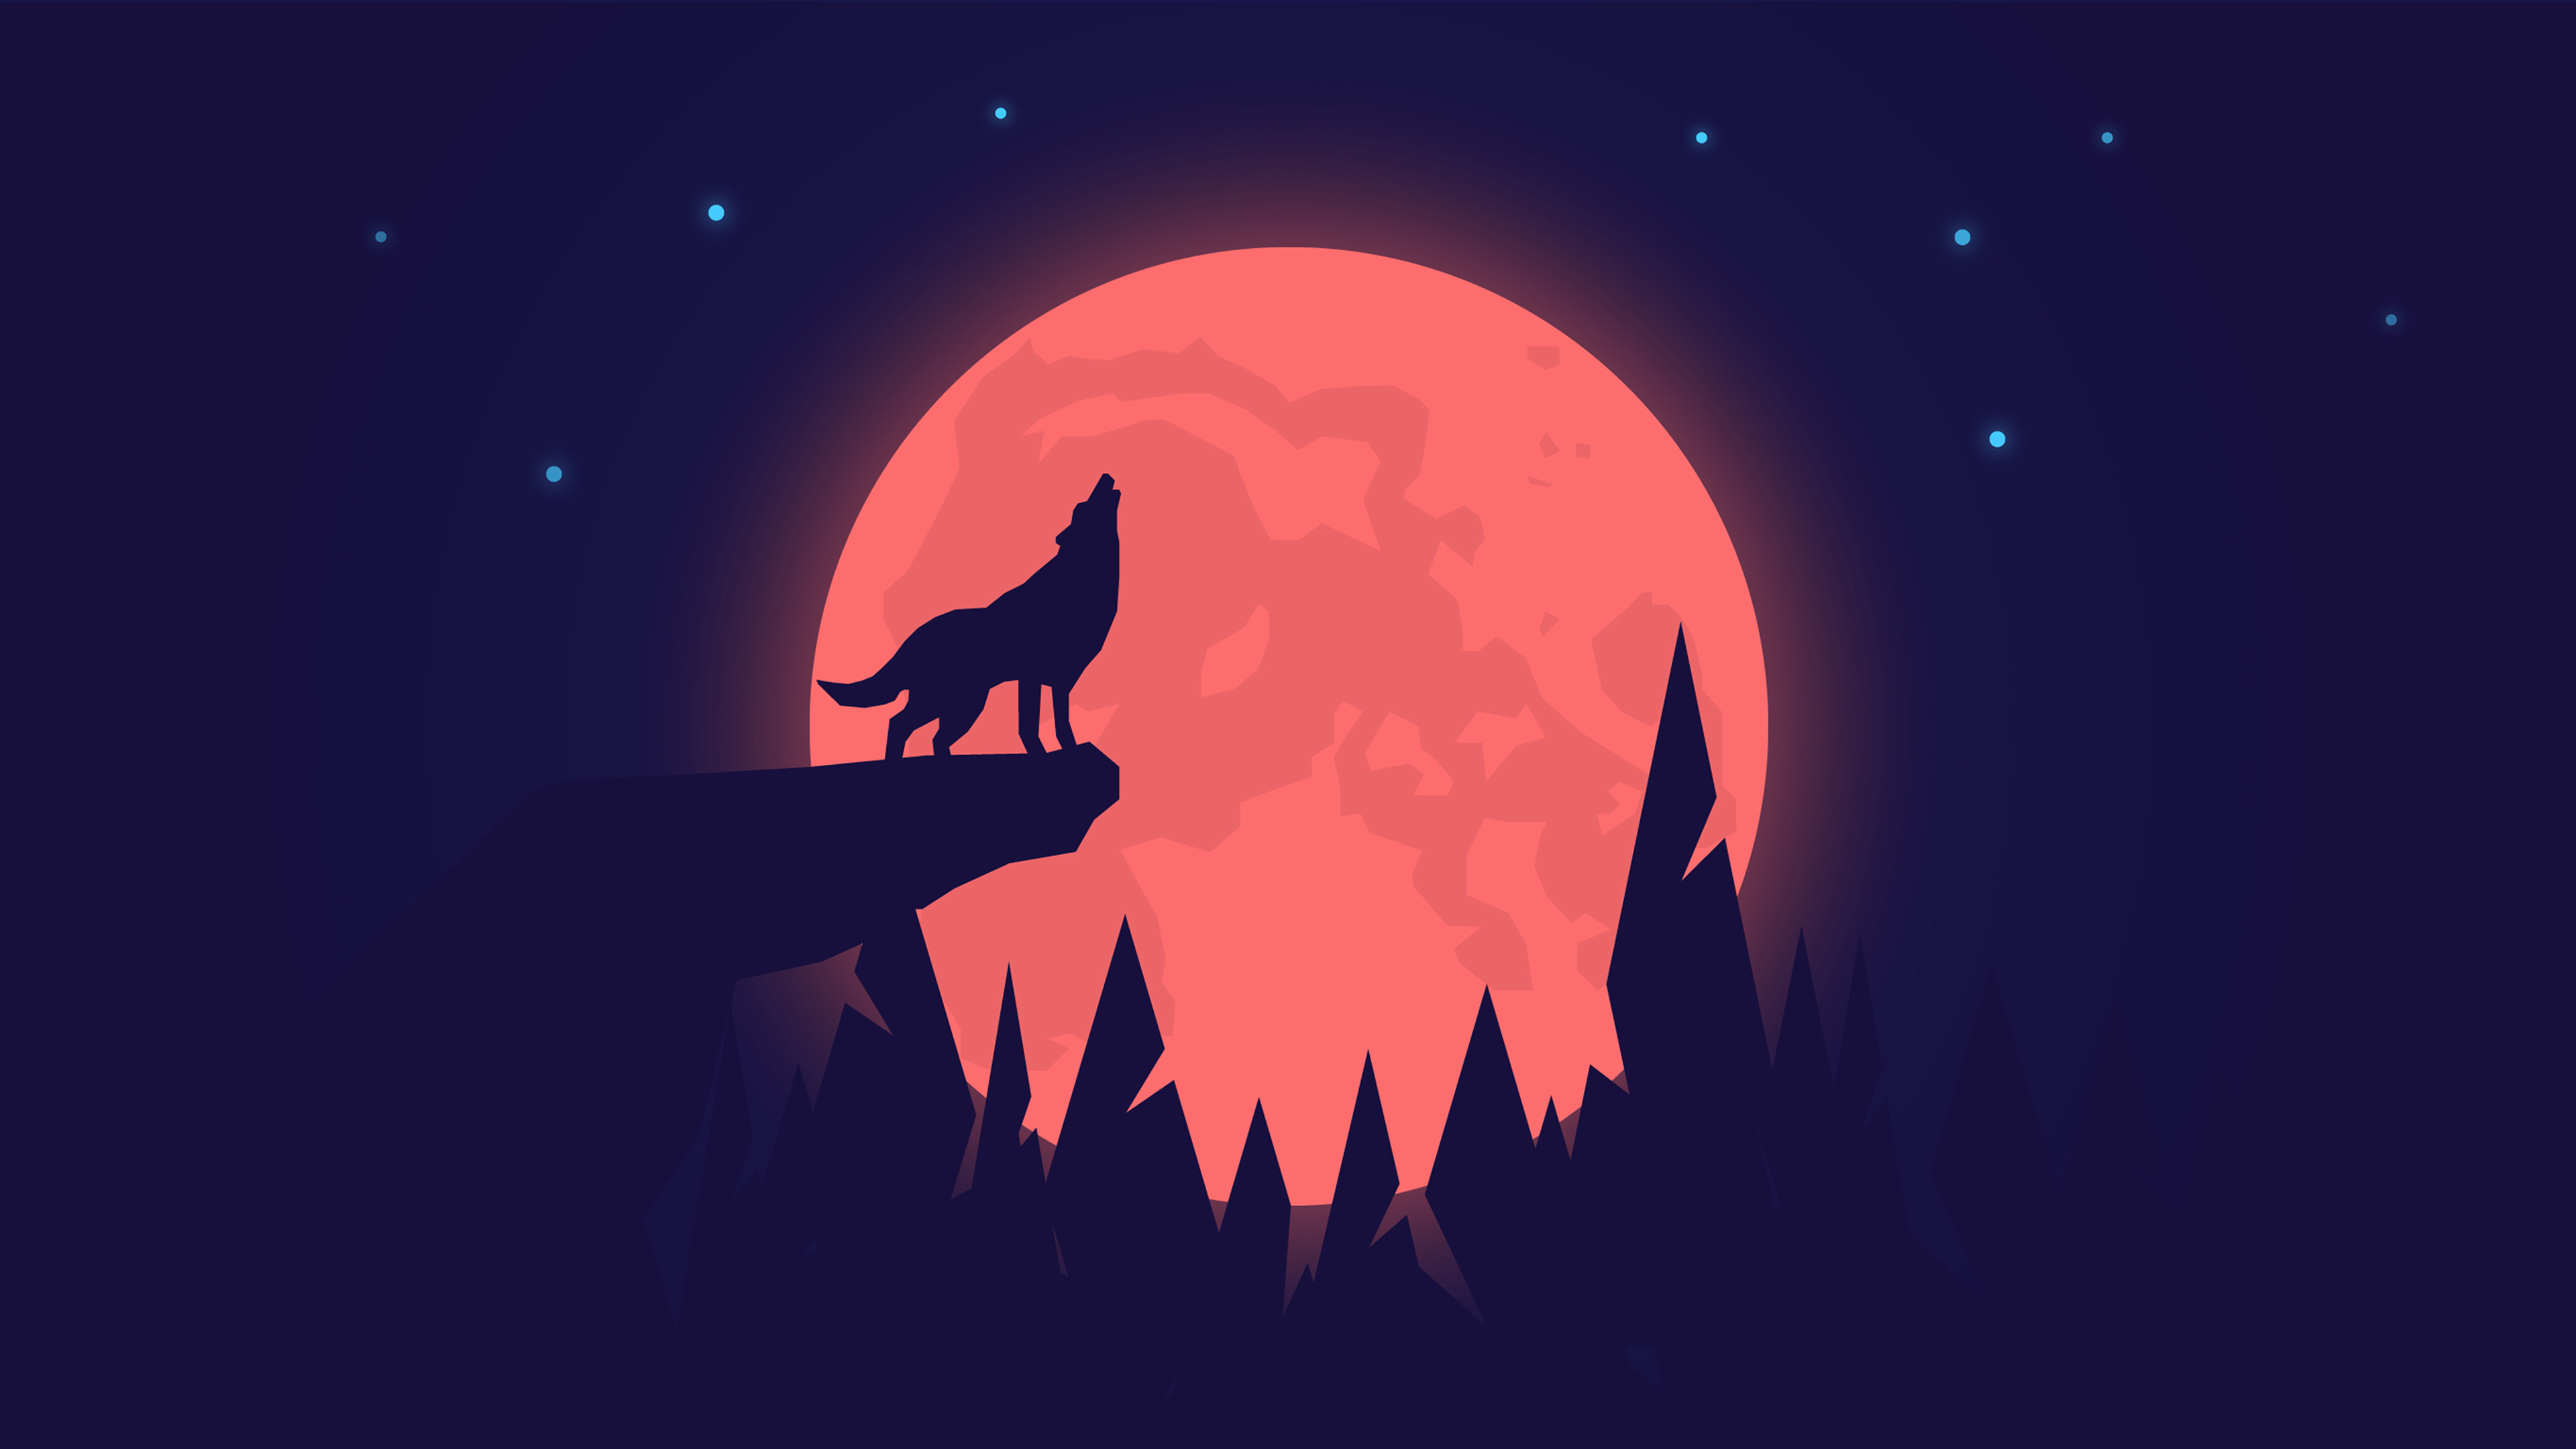 Wolf Howling On Full Moon Night 4k Ultra Hd Wallpaper Background Image 3840x2160 Id 1080149 Wallpaper Abyss